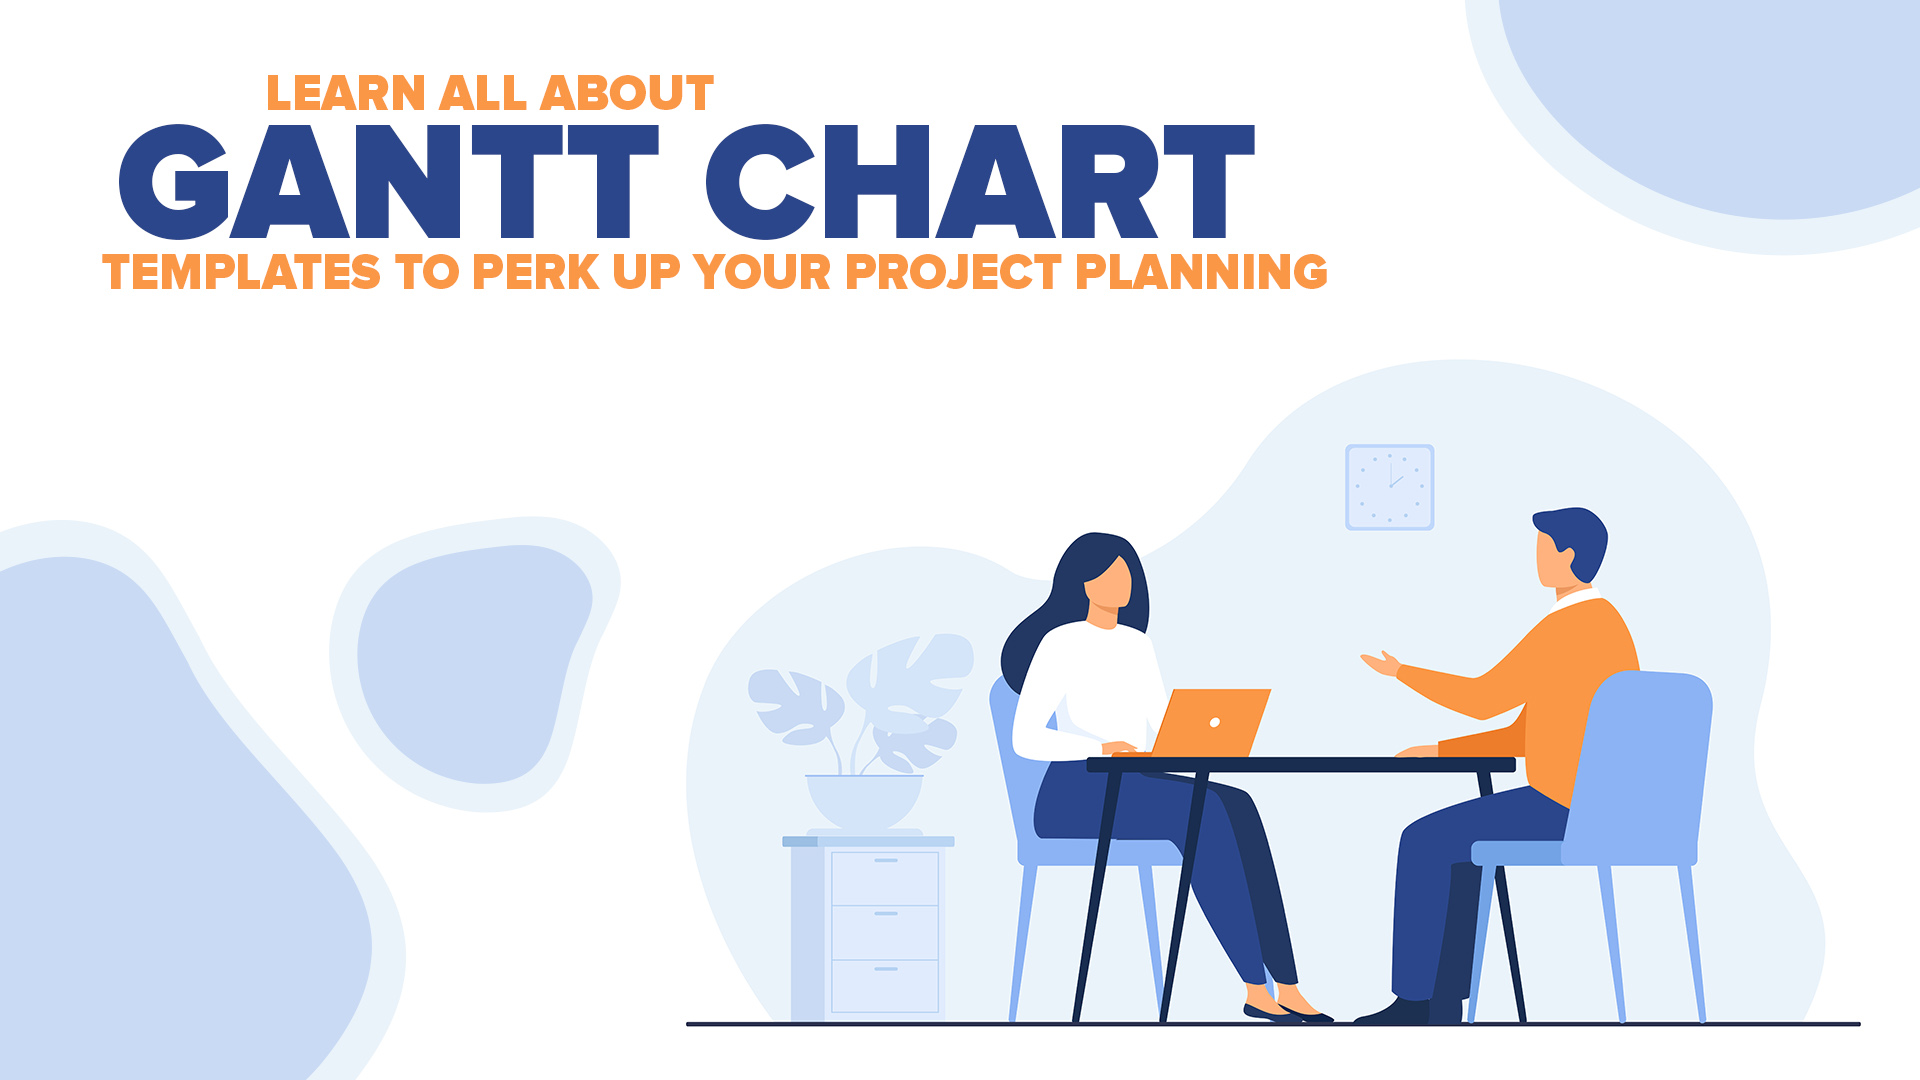 Learn All About Gantt Chart Templates To Perk Up Your Project Planning (Plus A Free Gantt Chart Template)